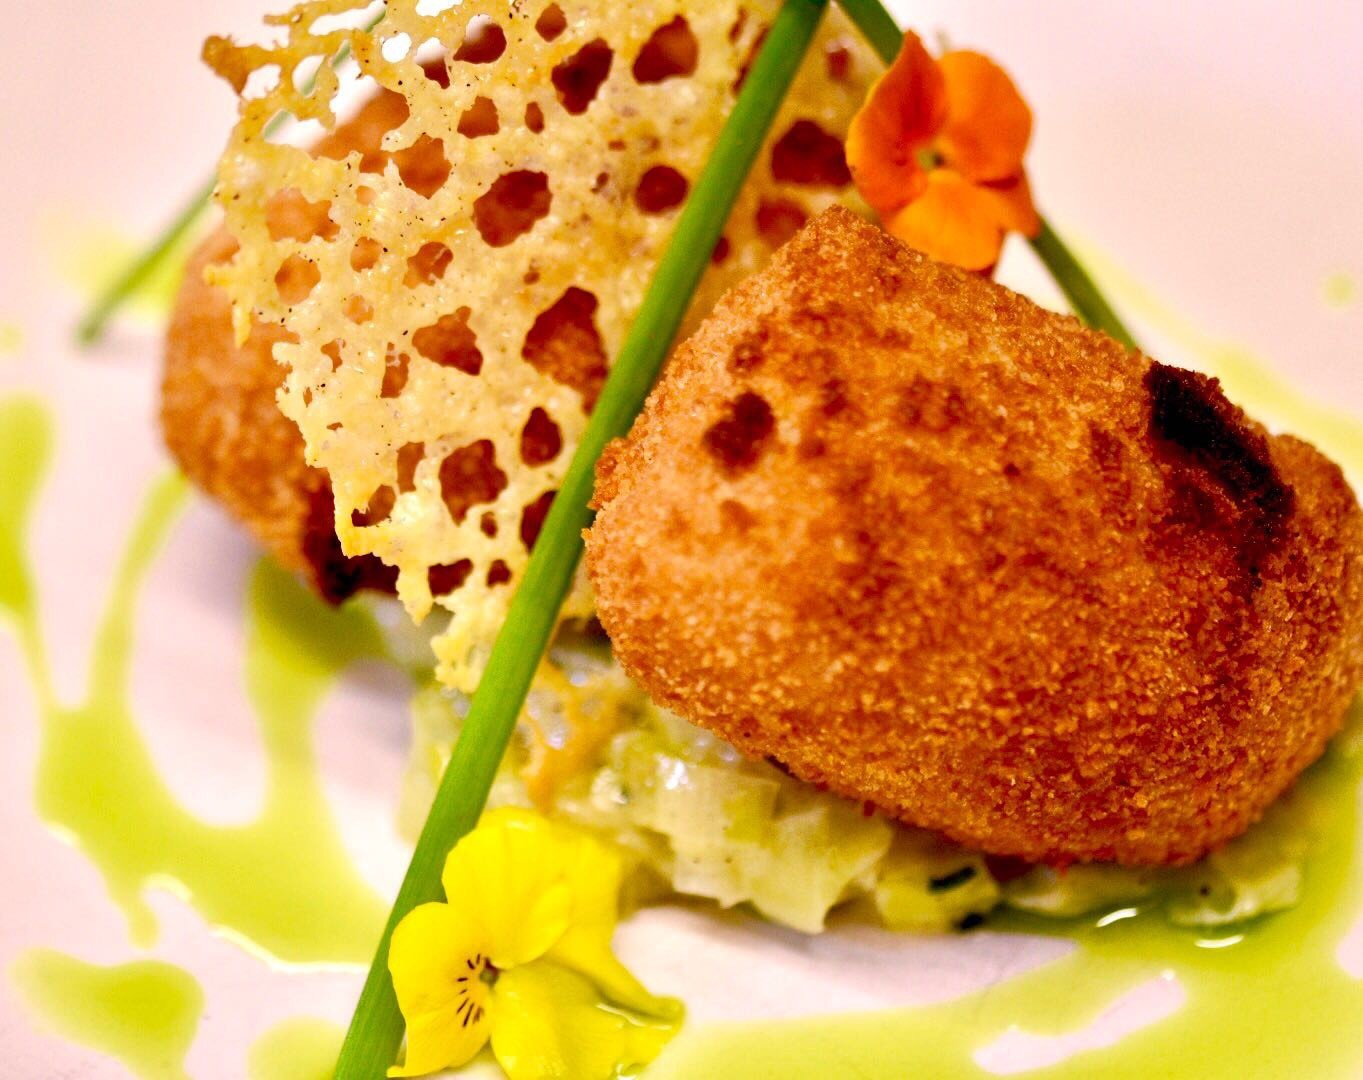 Smoked Haddock and manchego croquettas